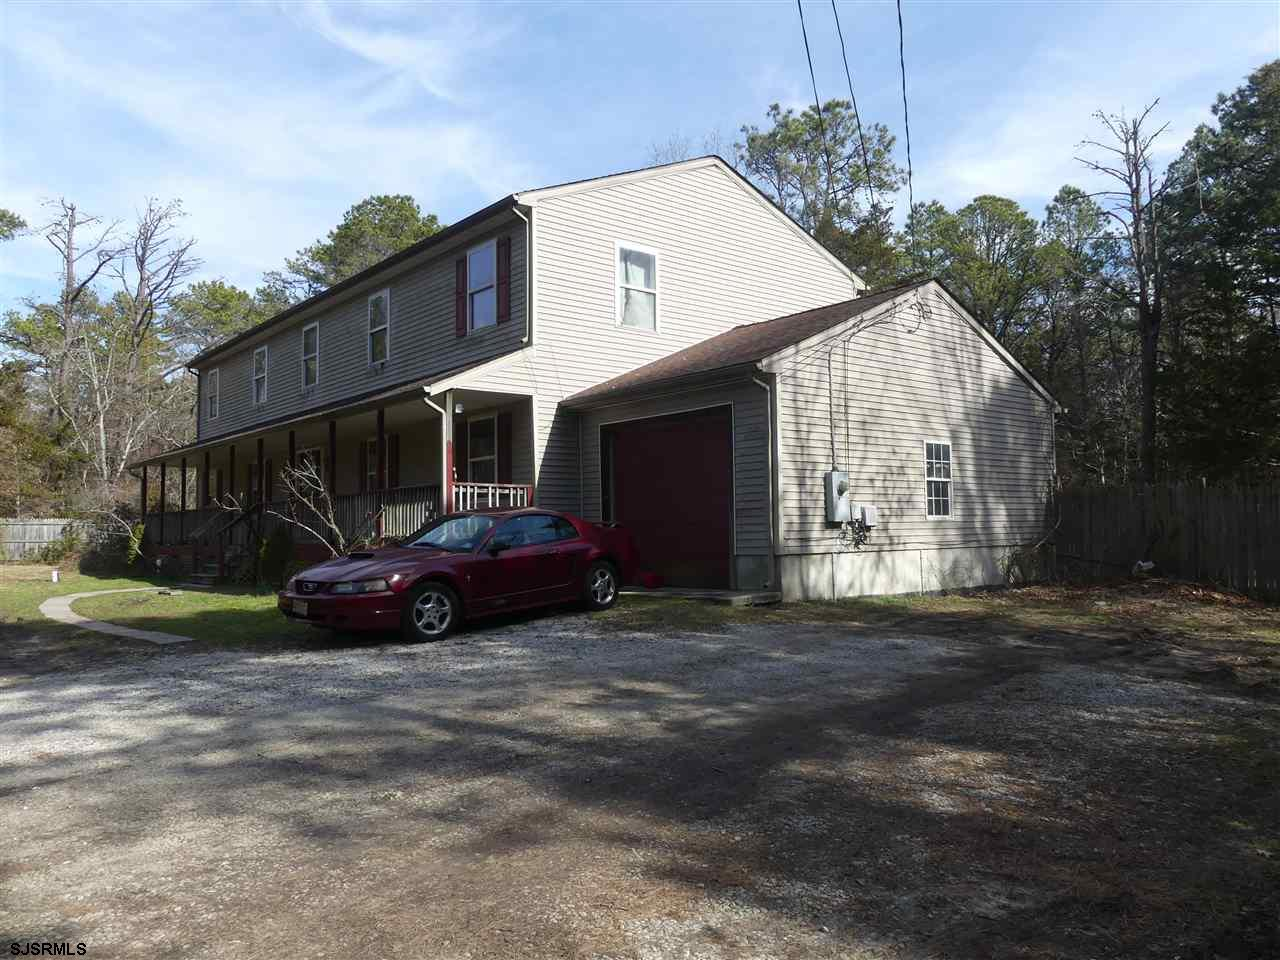 A great value with tons of potential. This Egg Harbor Township home is situated on a 200' x 200' pri